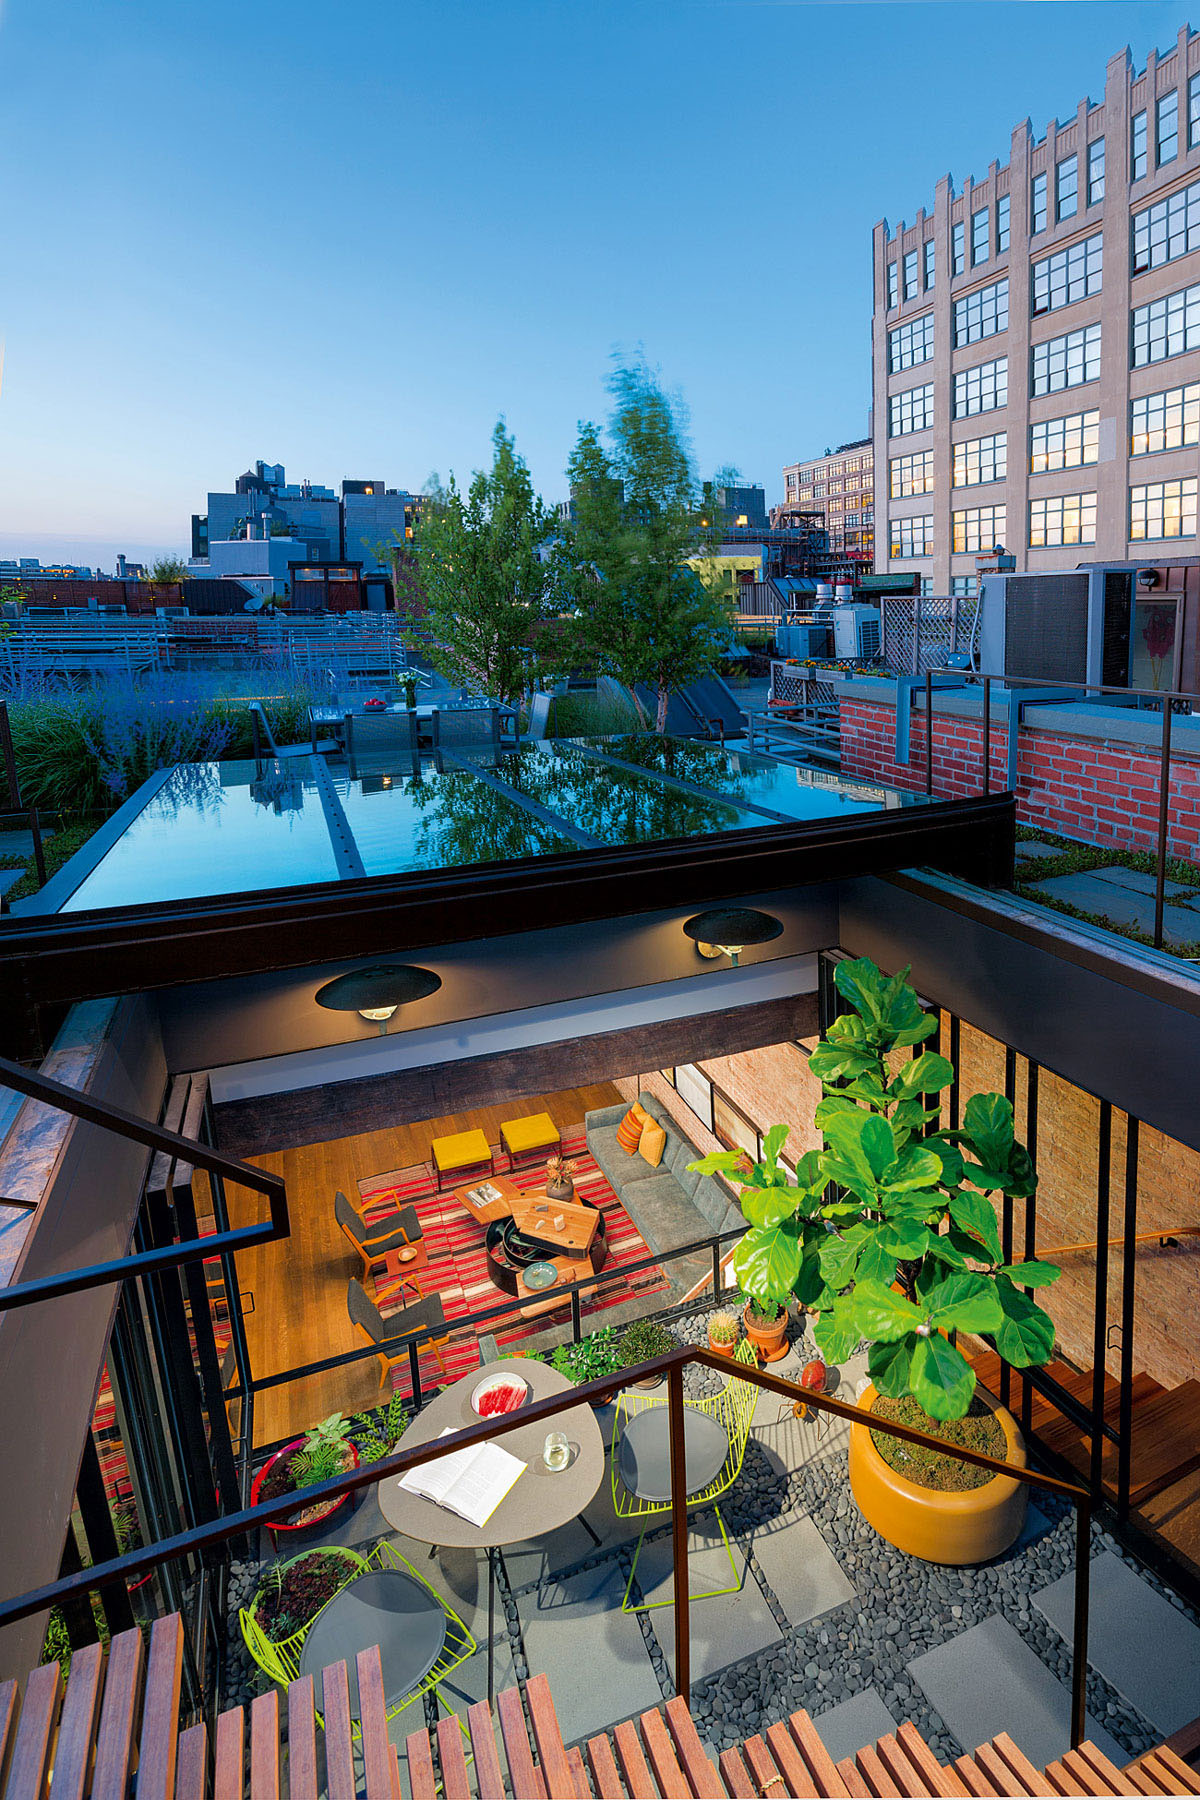 Chic New York City Loft with Roof Garden Terrace